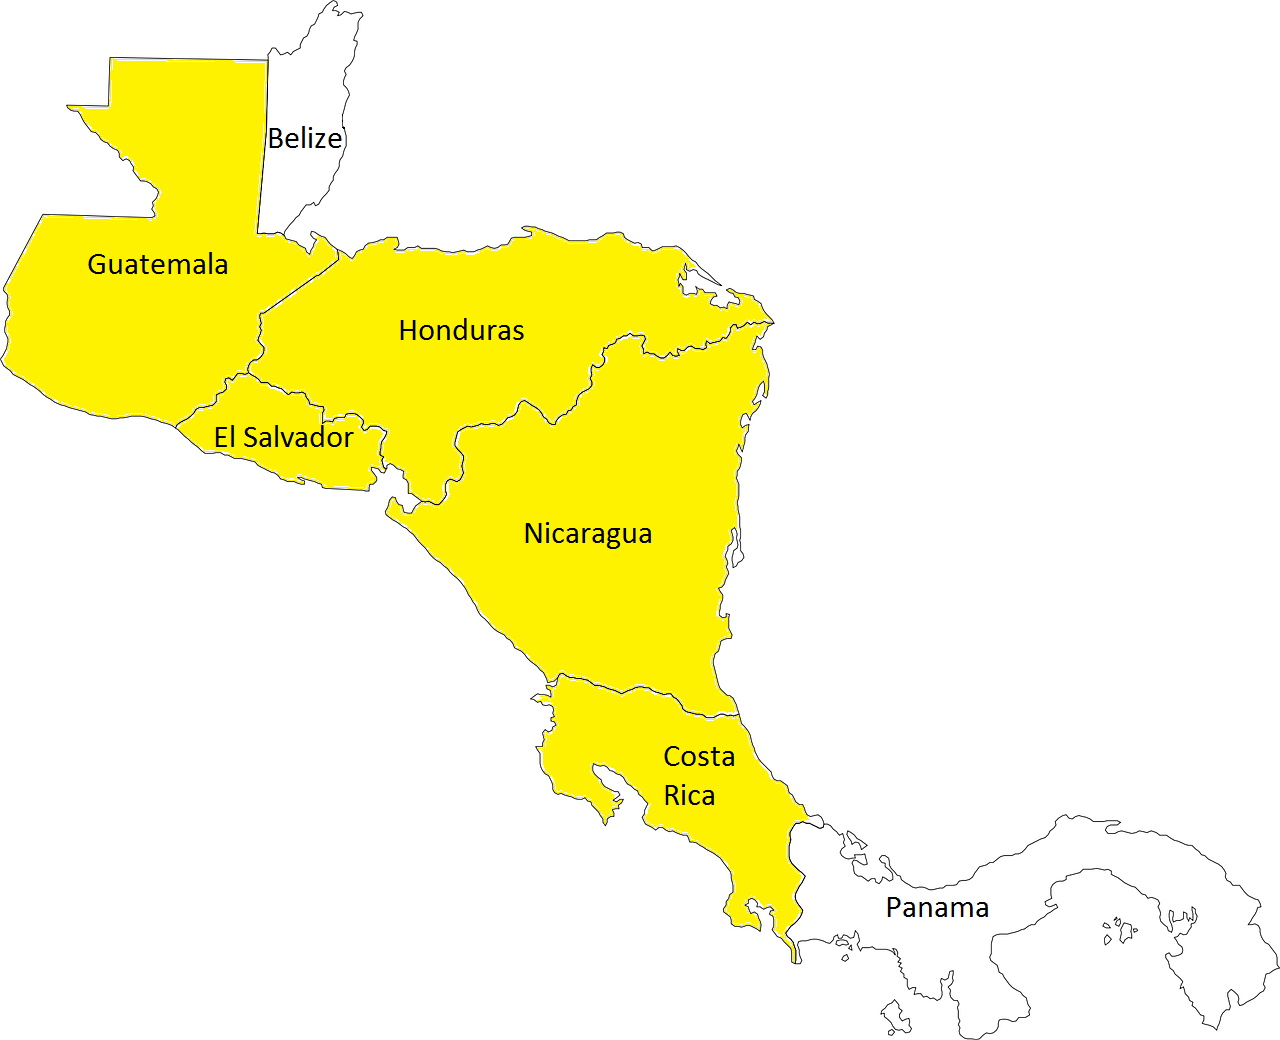 Central American Geography 101. The yellow countries indicate those we'd be driving in / through.